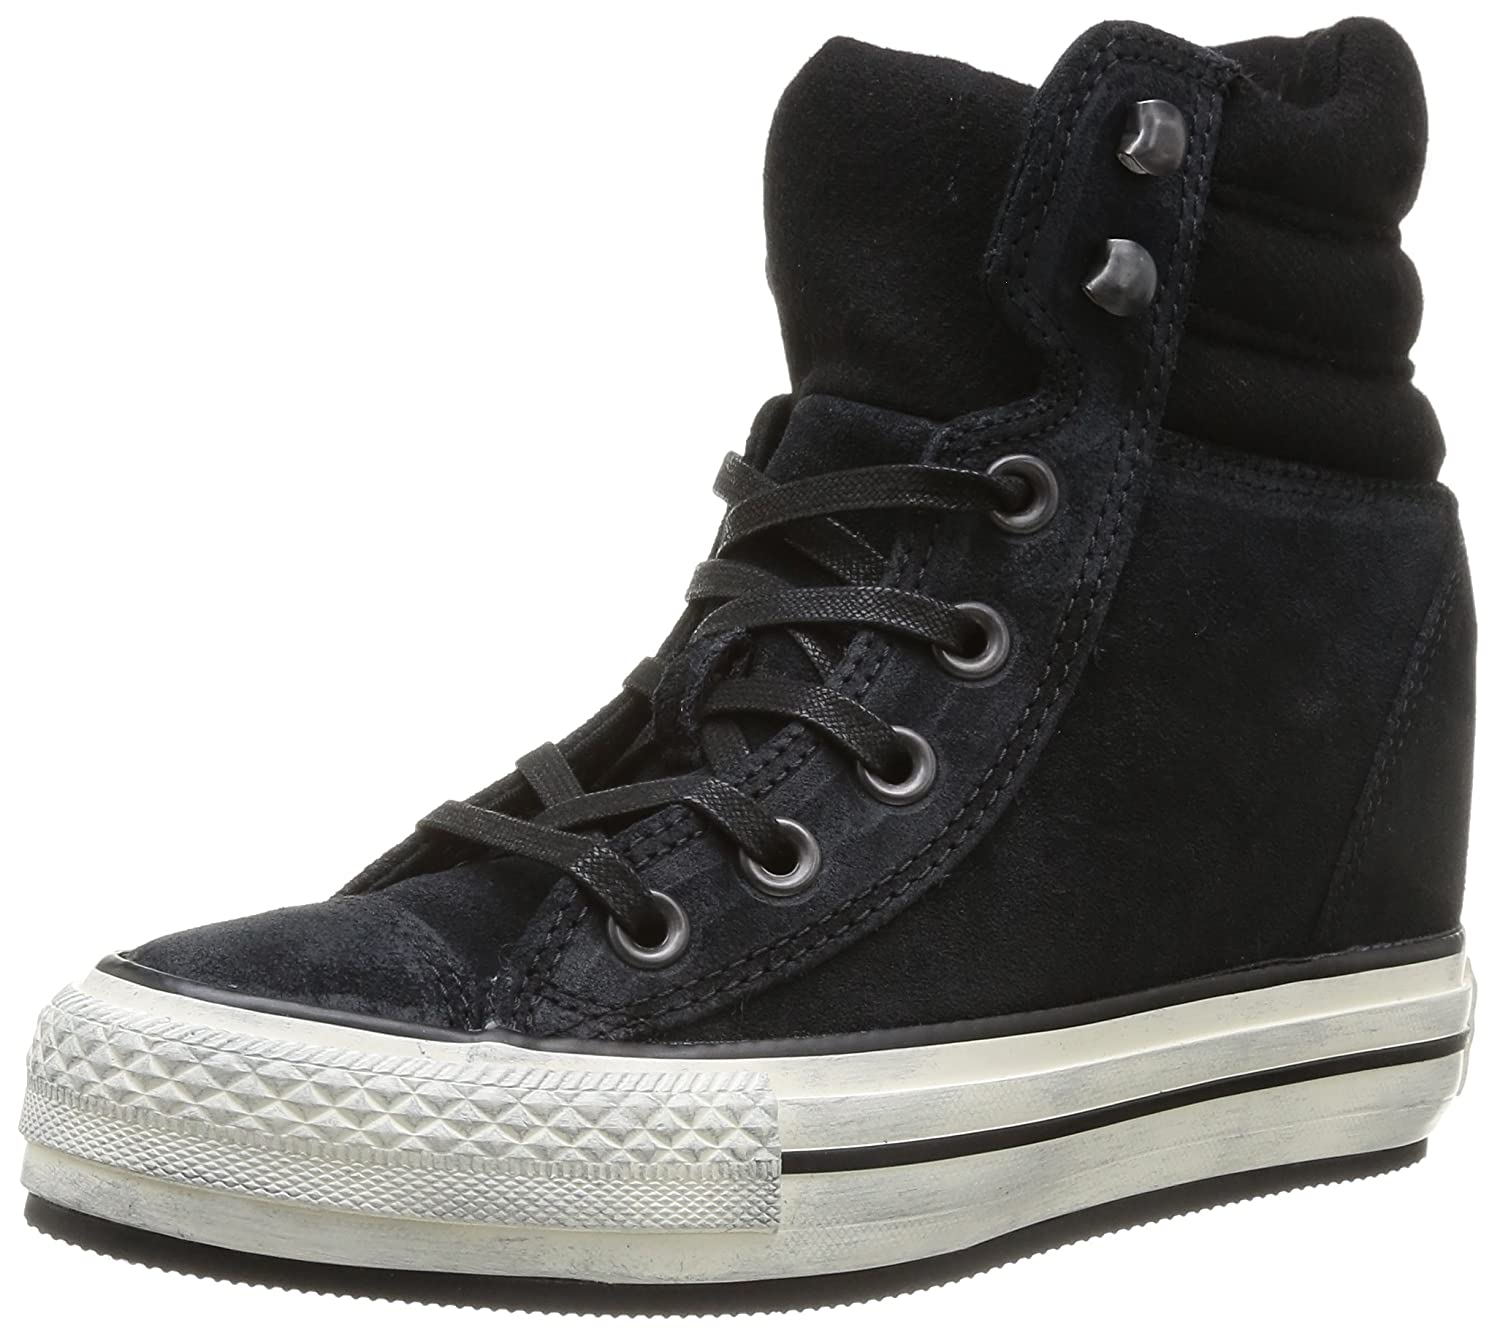 df740f38c61fd Converse Chuck Taylor All Star Hi Shoes - for Women Black Size  8   Amazon.co.uk  Shoes   Bags